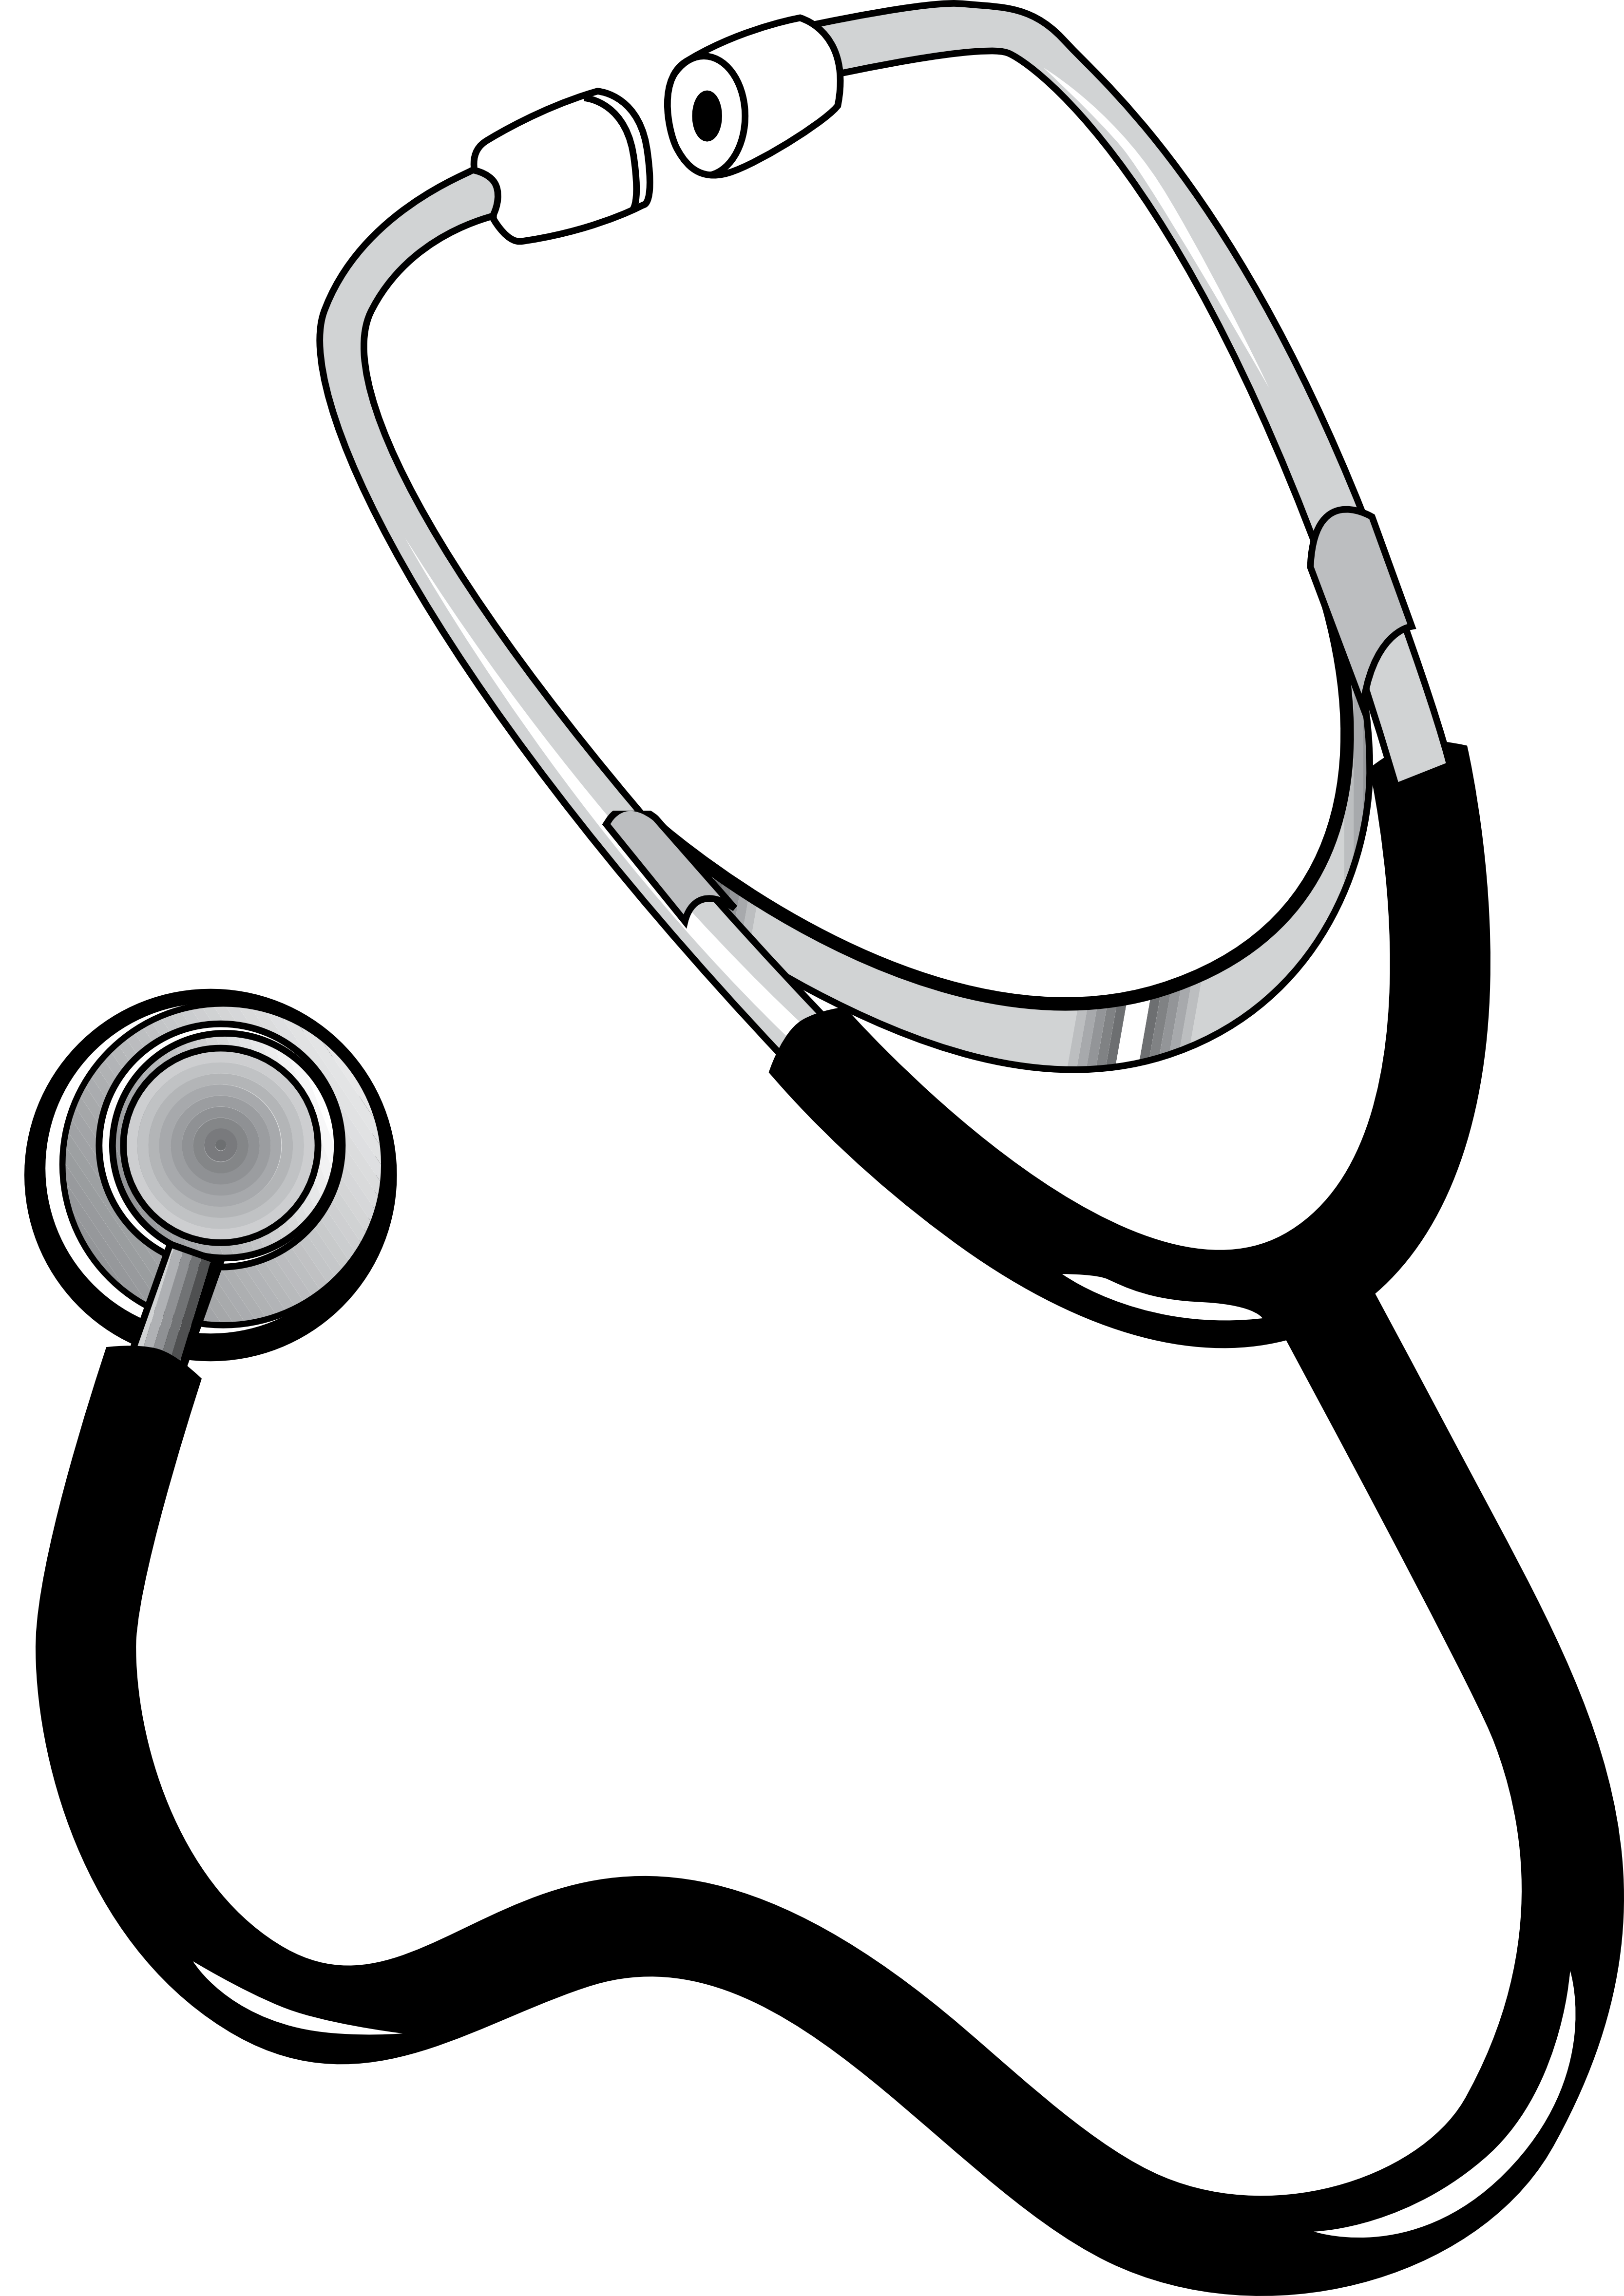 Earbuds clipart cartoon drawn. Doctor clip black